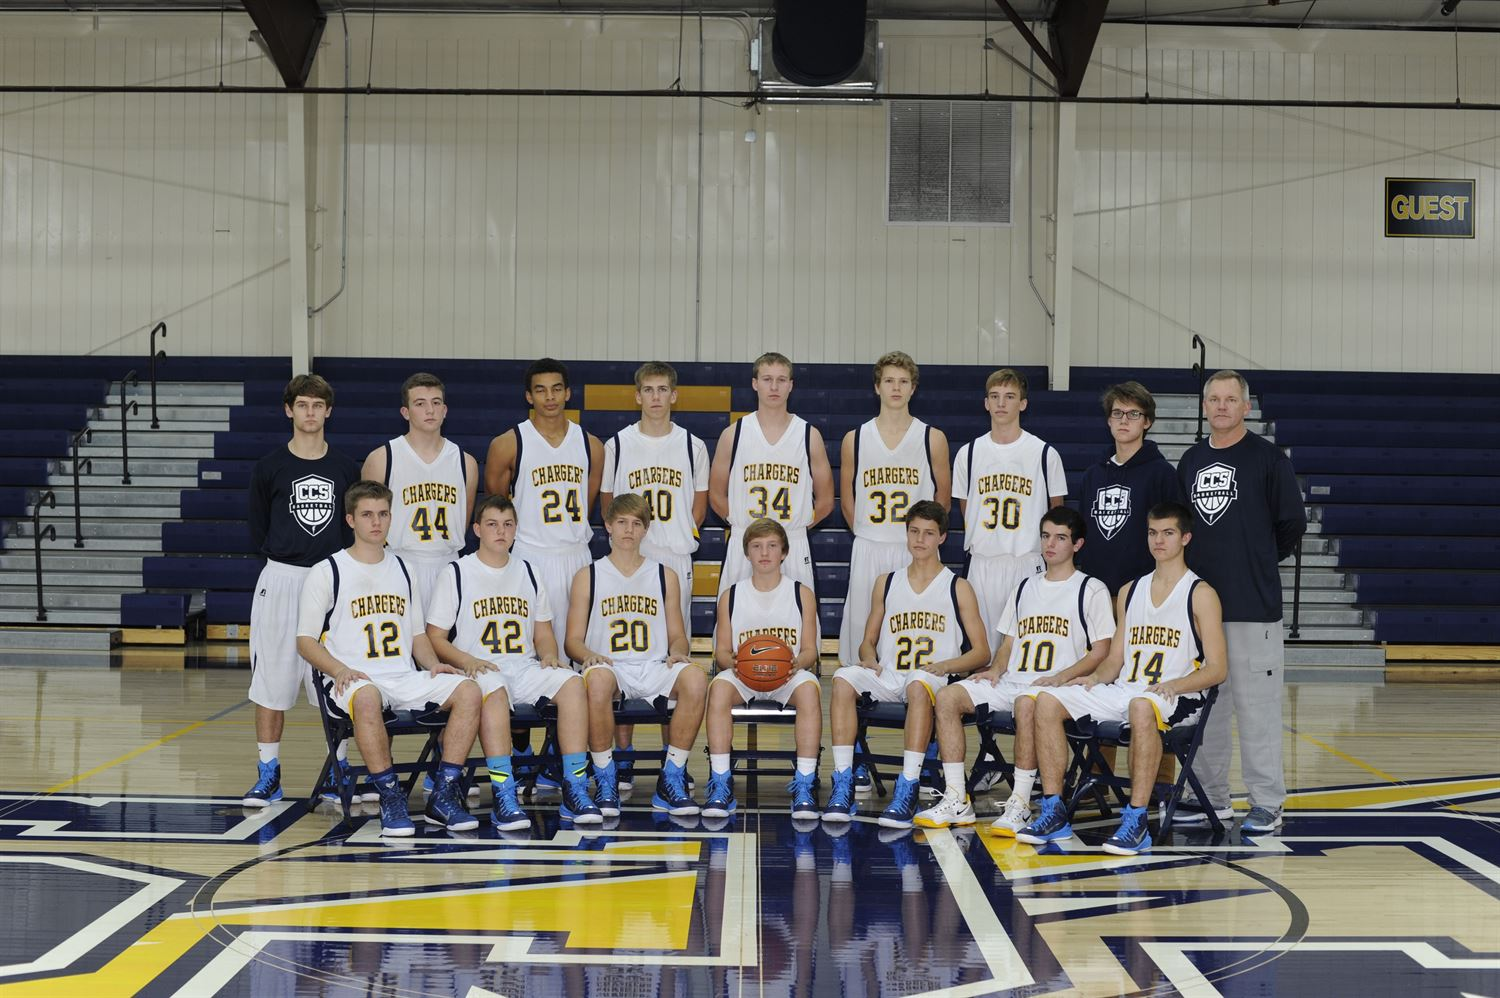 Chattanooga Christian High School - CCS Basketball